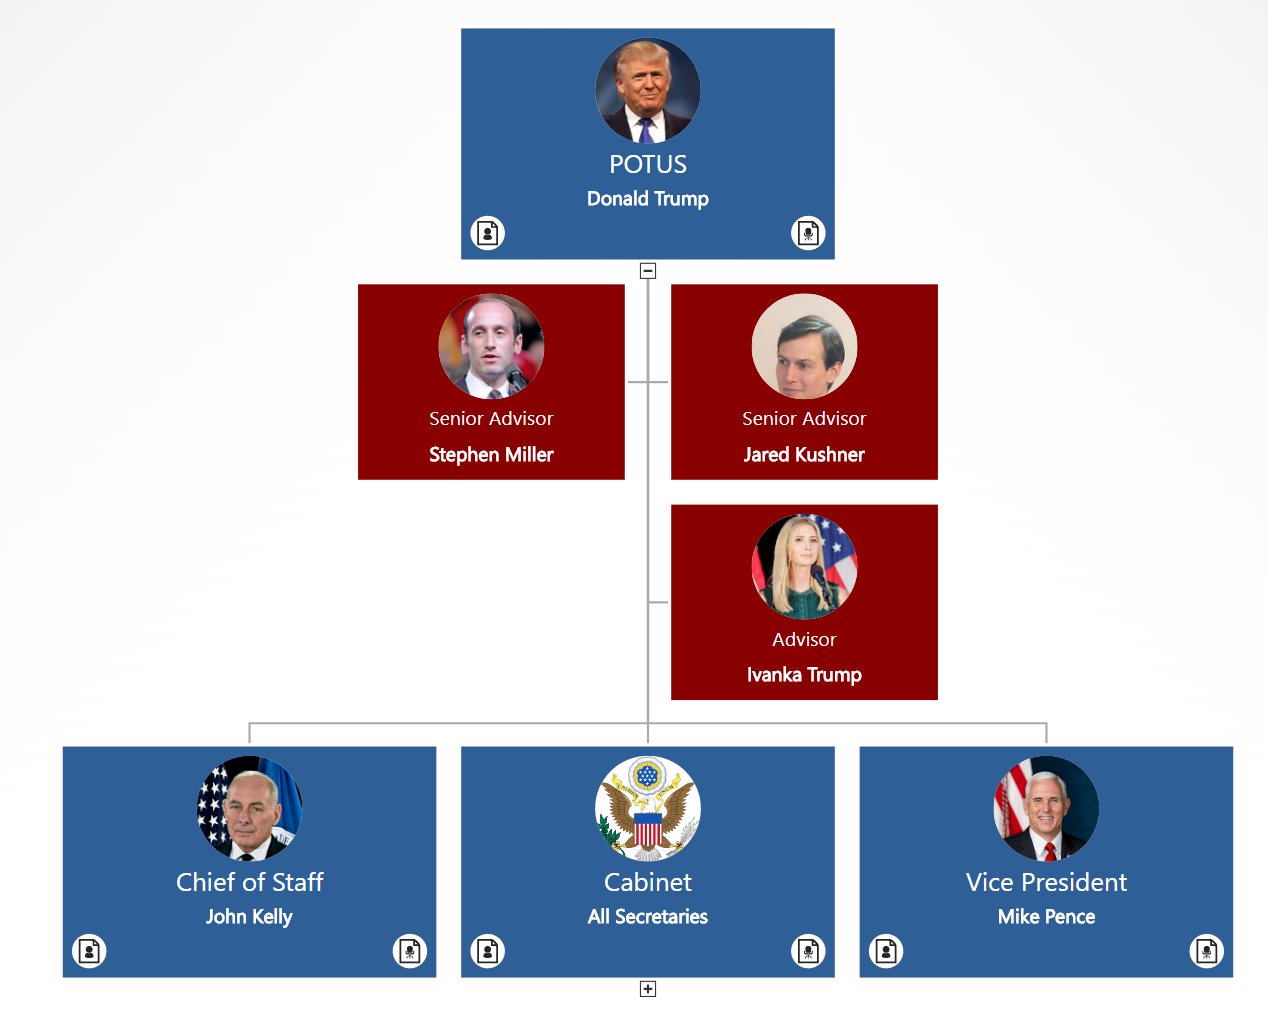 president donald trump u0026 39 s administration in an org chart